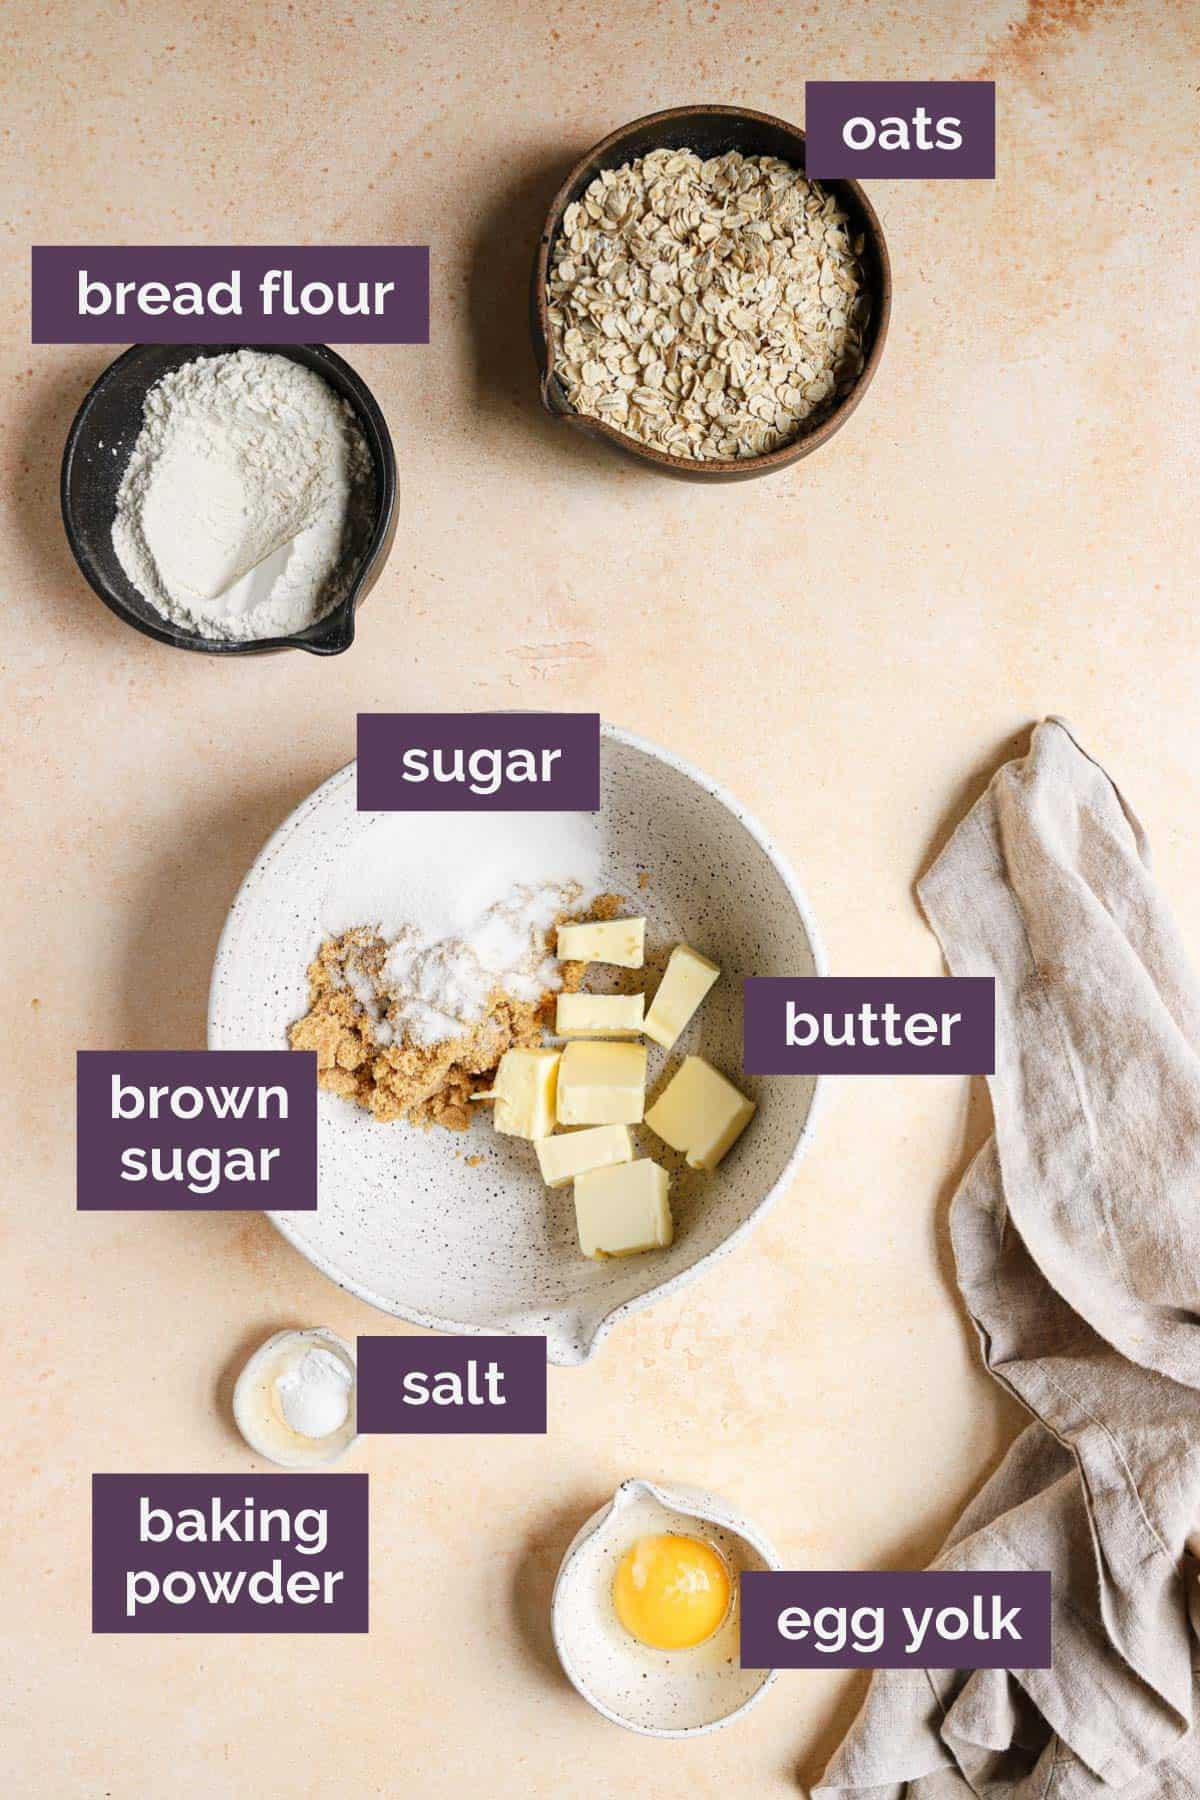 Ingredients for the oat crust labeled with purple labels,